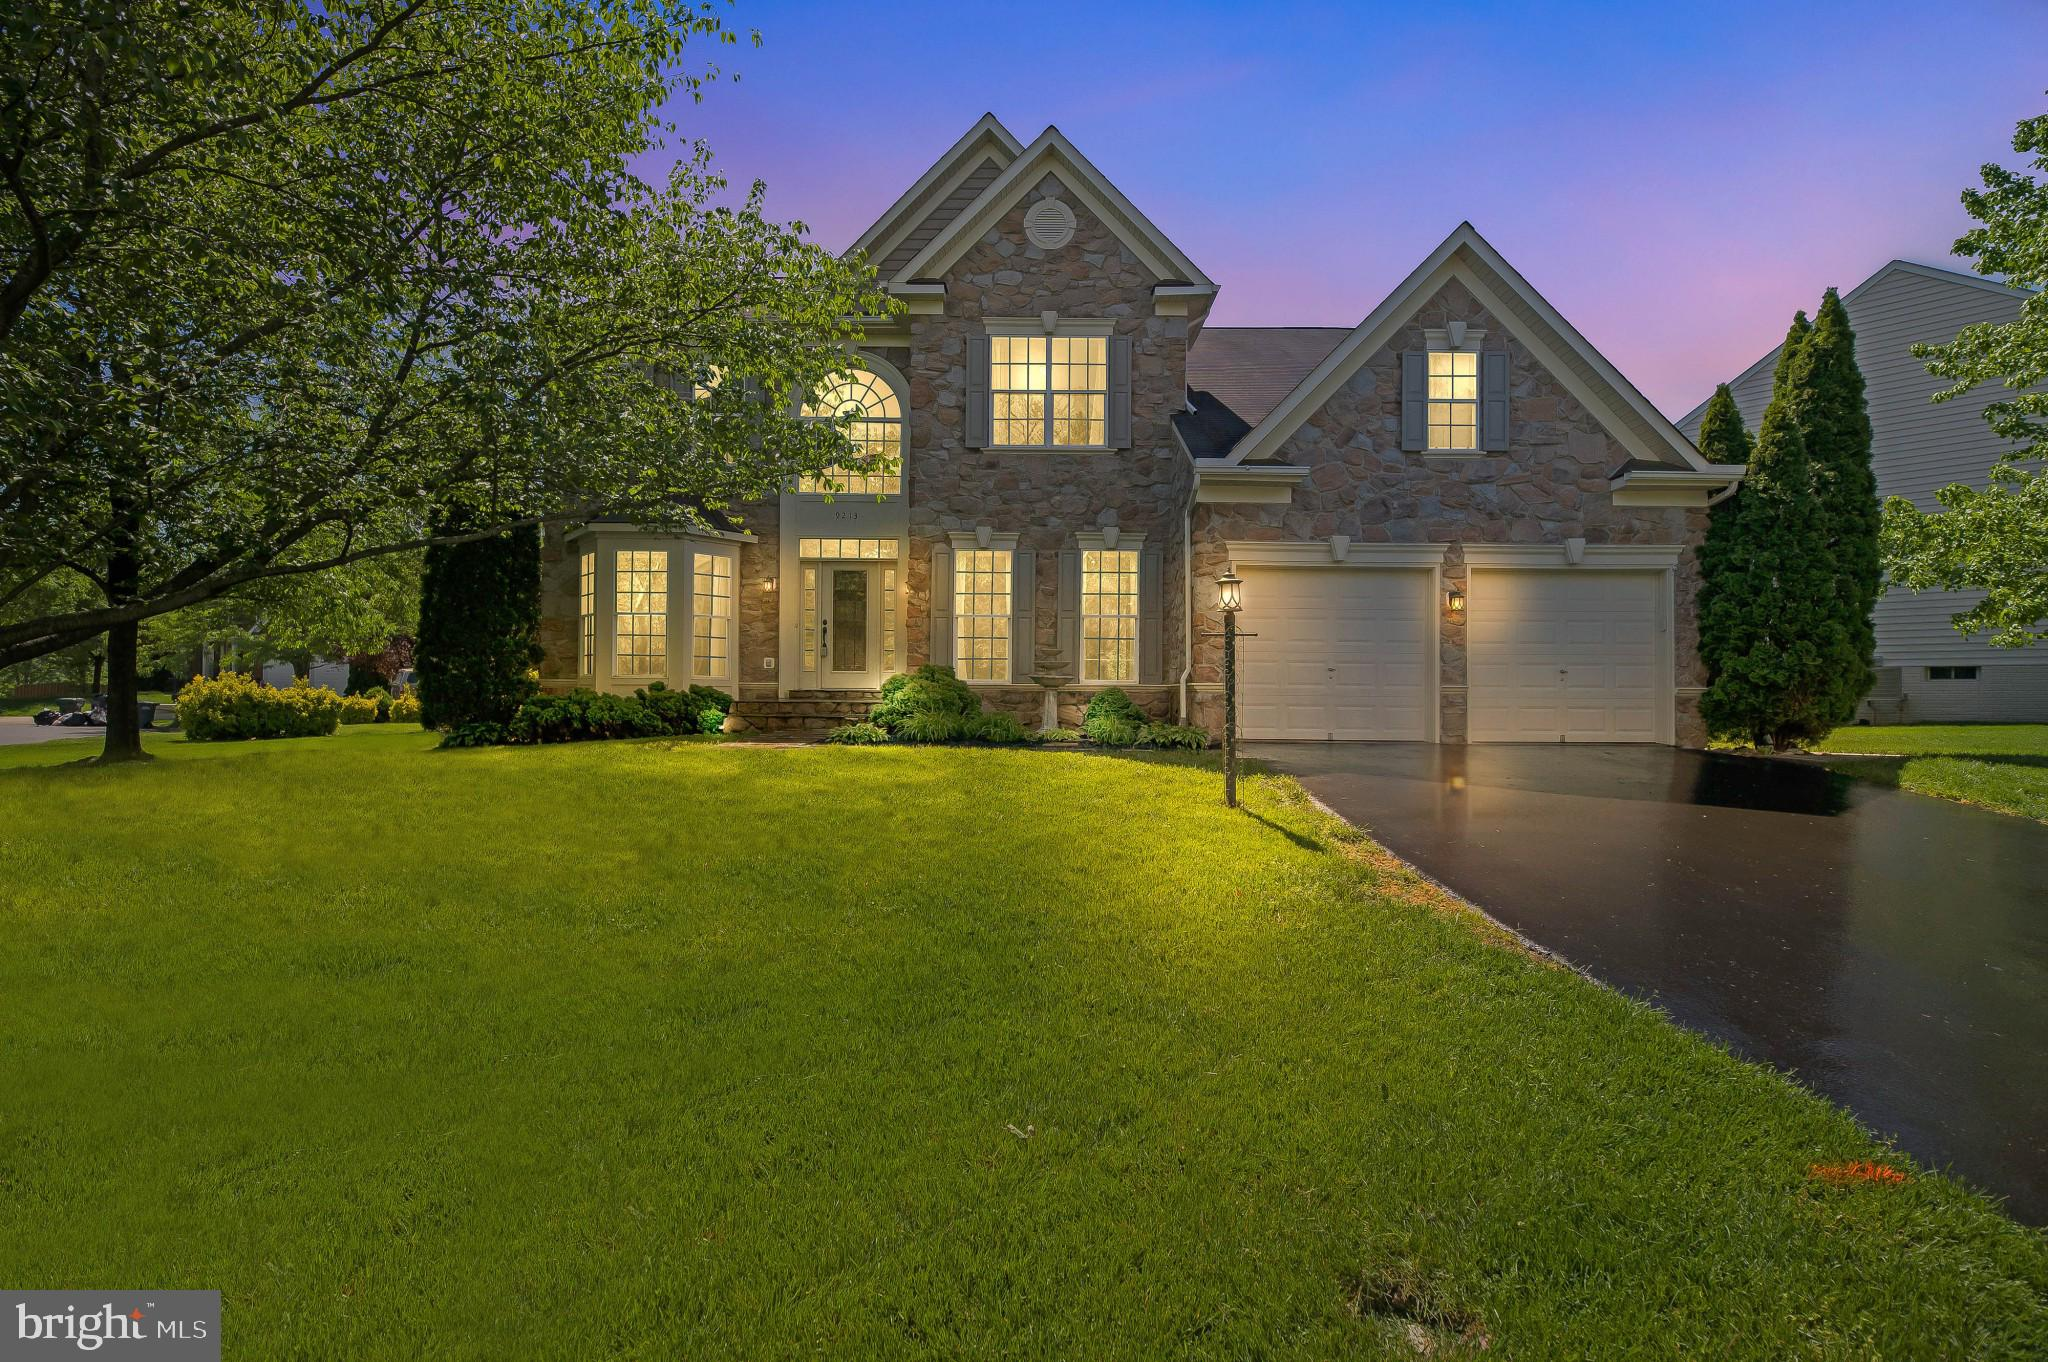 Welcome to this lovely, full-featured, and move-in ready home in Bristow! This home features 5 beds